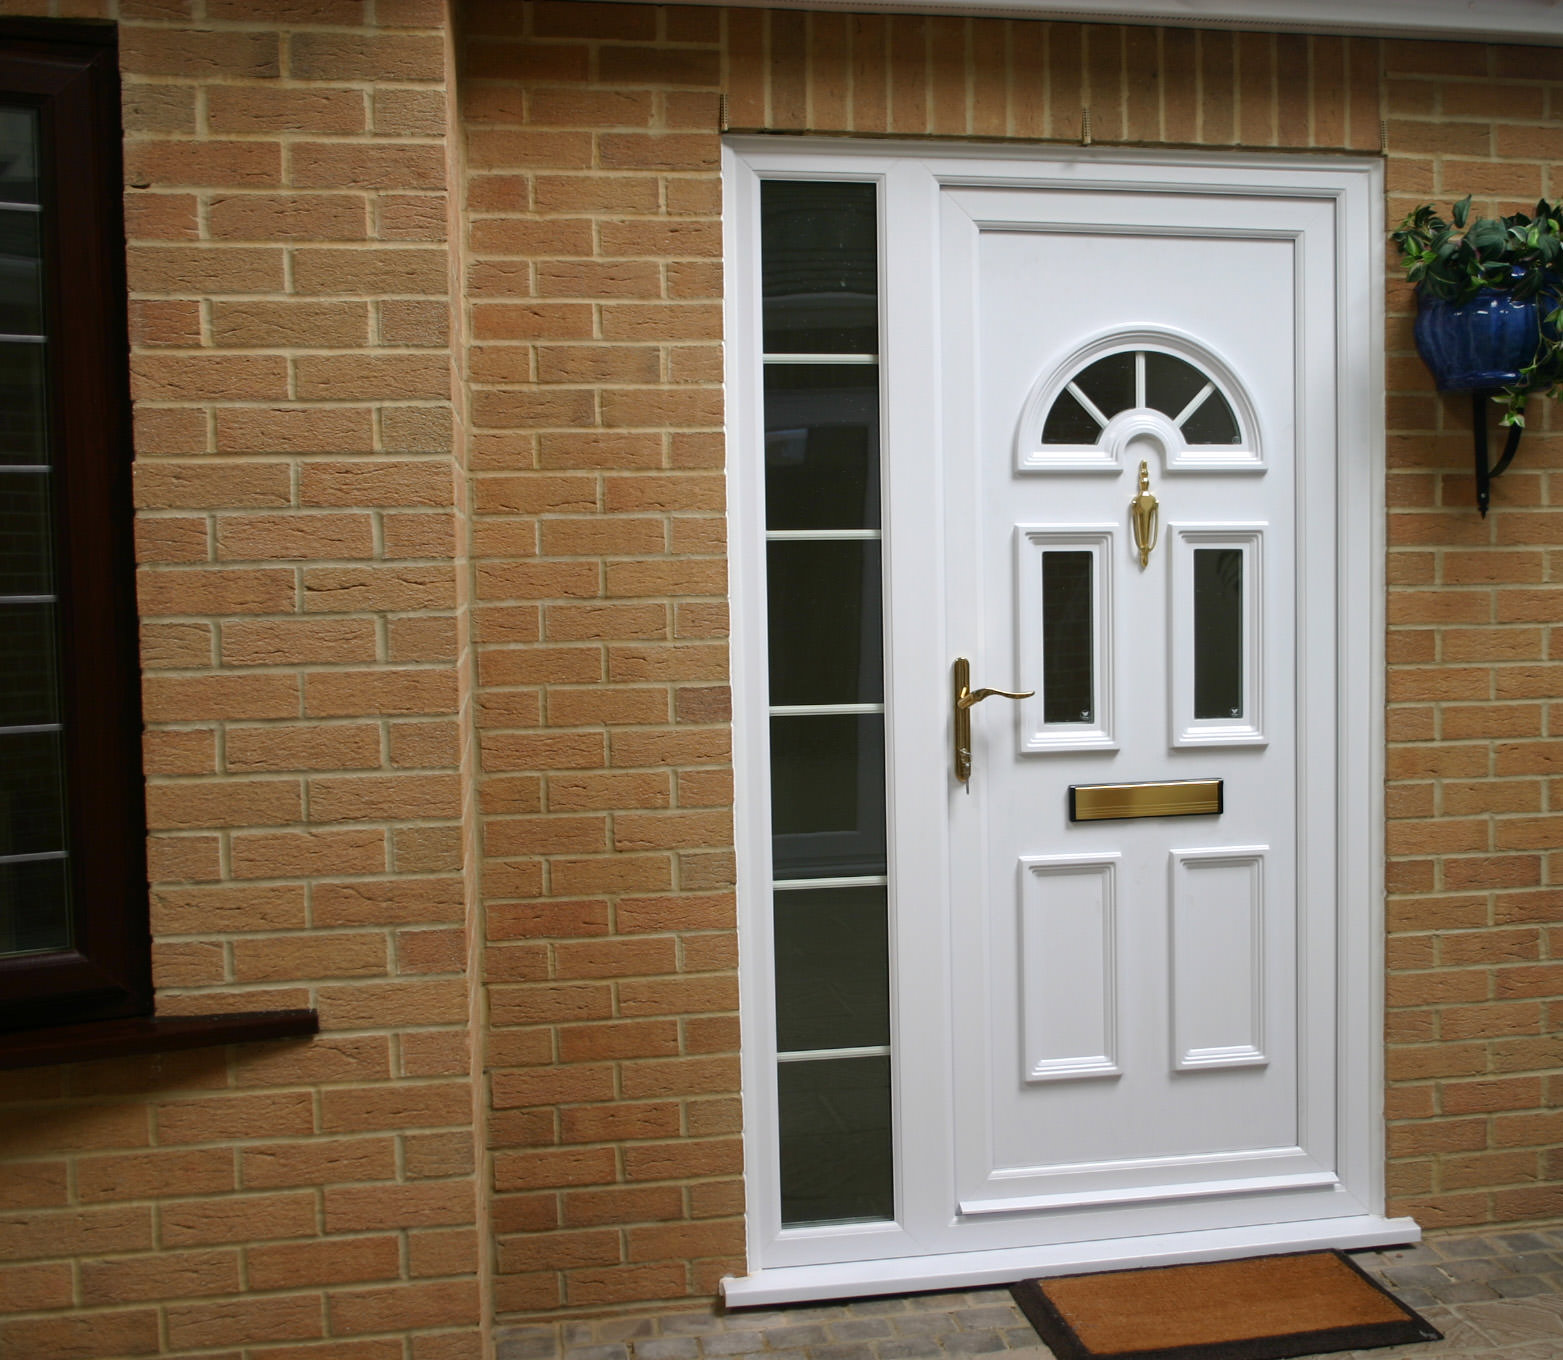 Upvc doors harrogate double glazed doors front door for Upvc back doors fitted